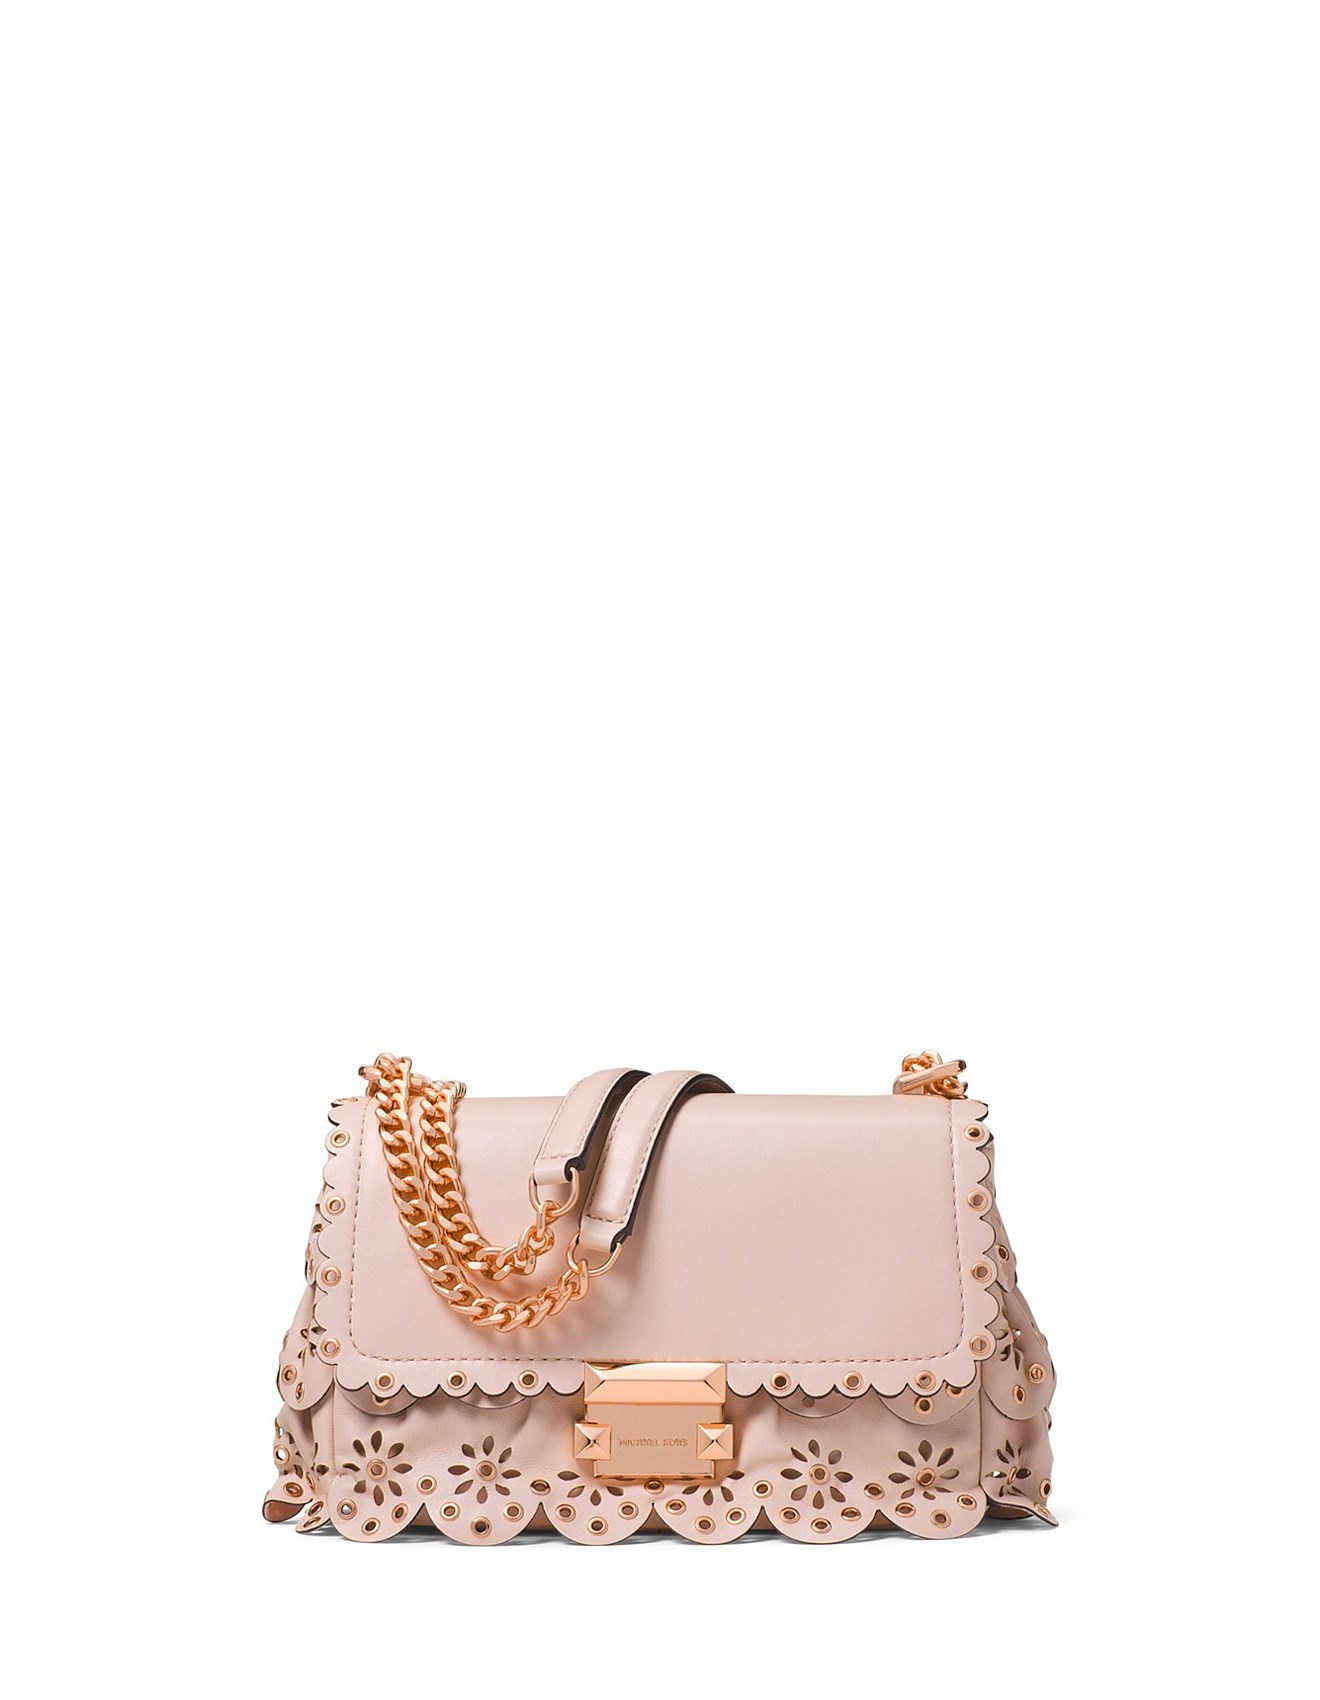 92ce06a15839 Sloan Small Floral Scalloped Leather Shoulder Bag